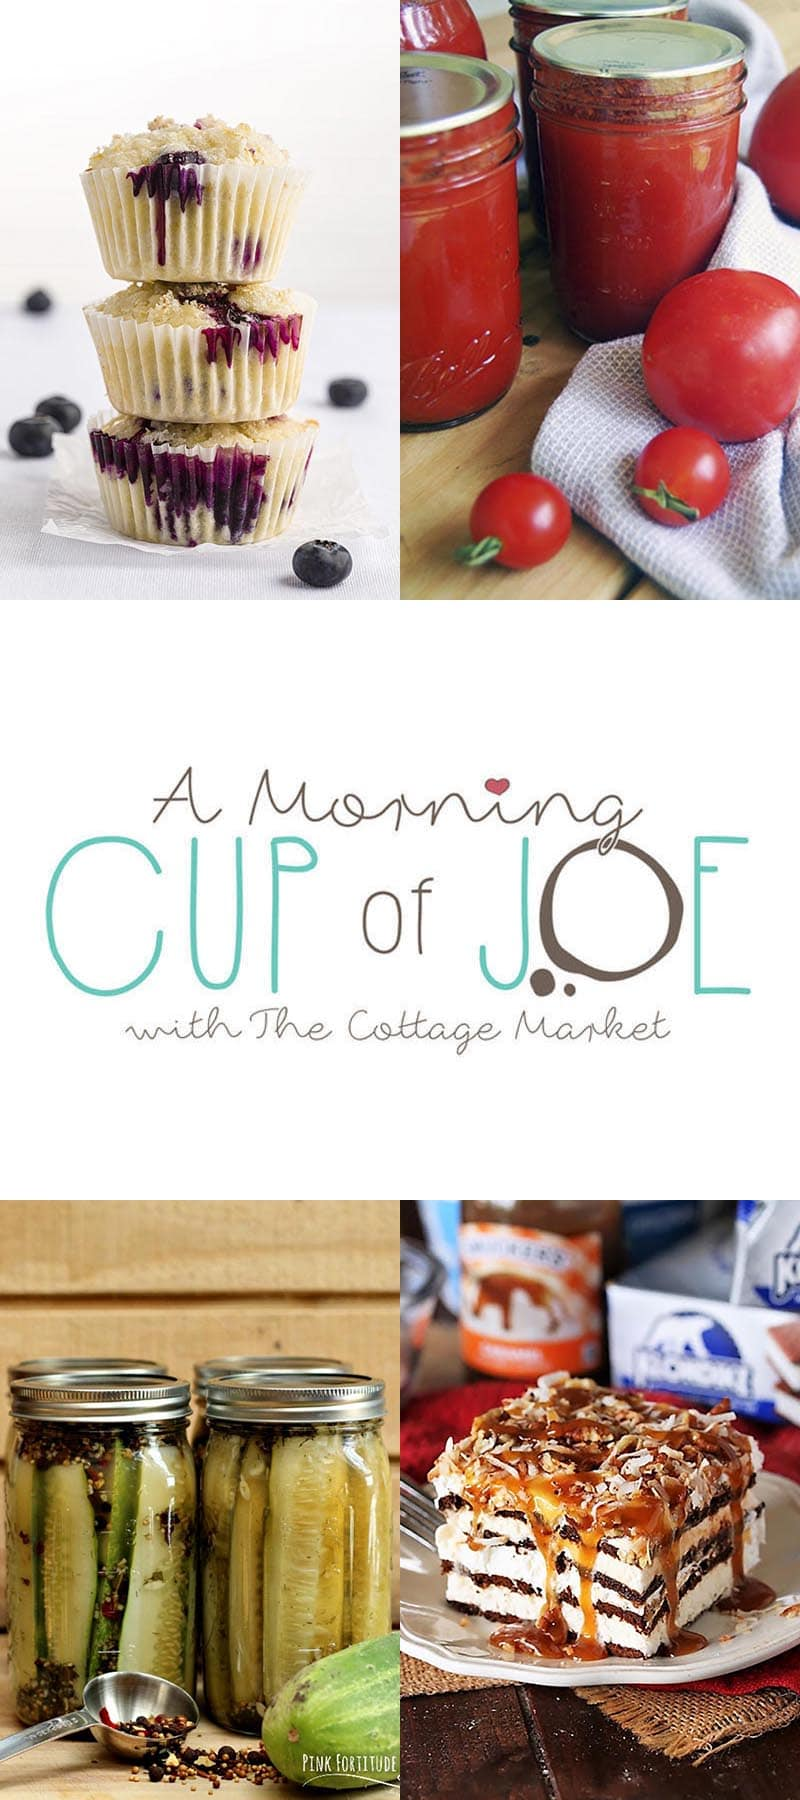 Enjoy A Morning Cup Of Joe Linky Party with DIY Features! Come and enjoy some wonderful features… check out new items on the party then share your creations!